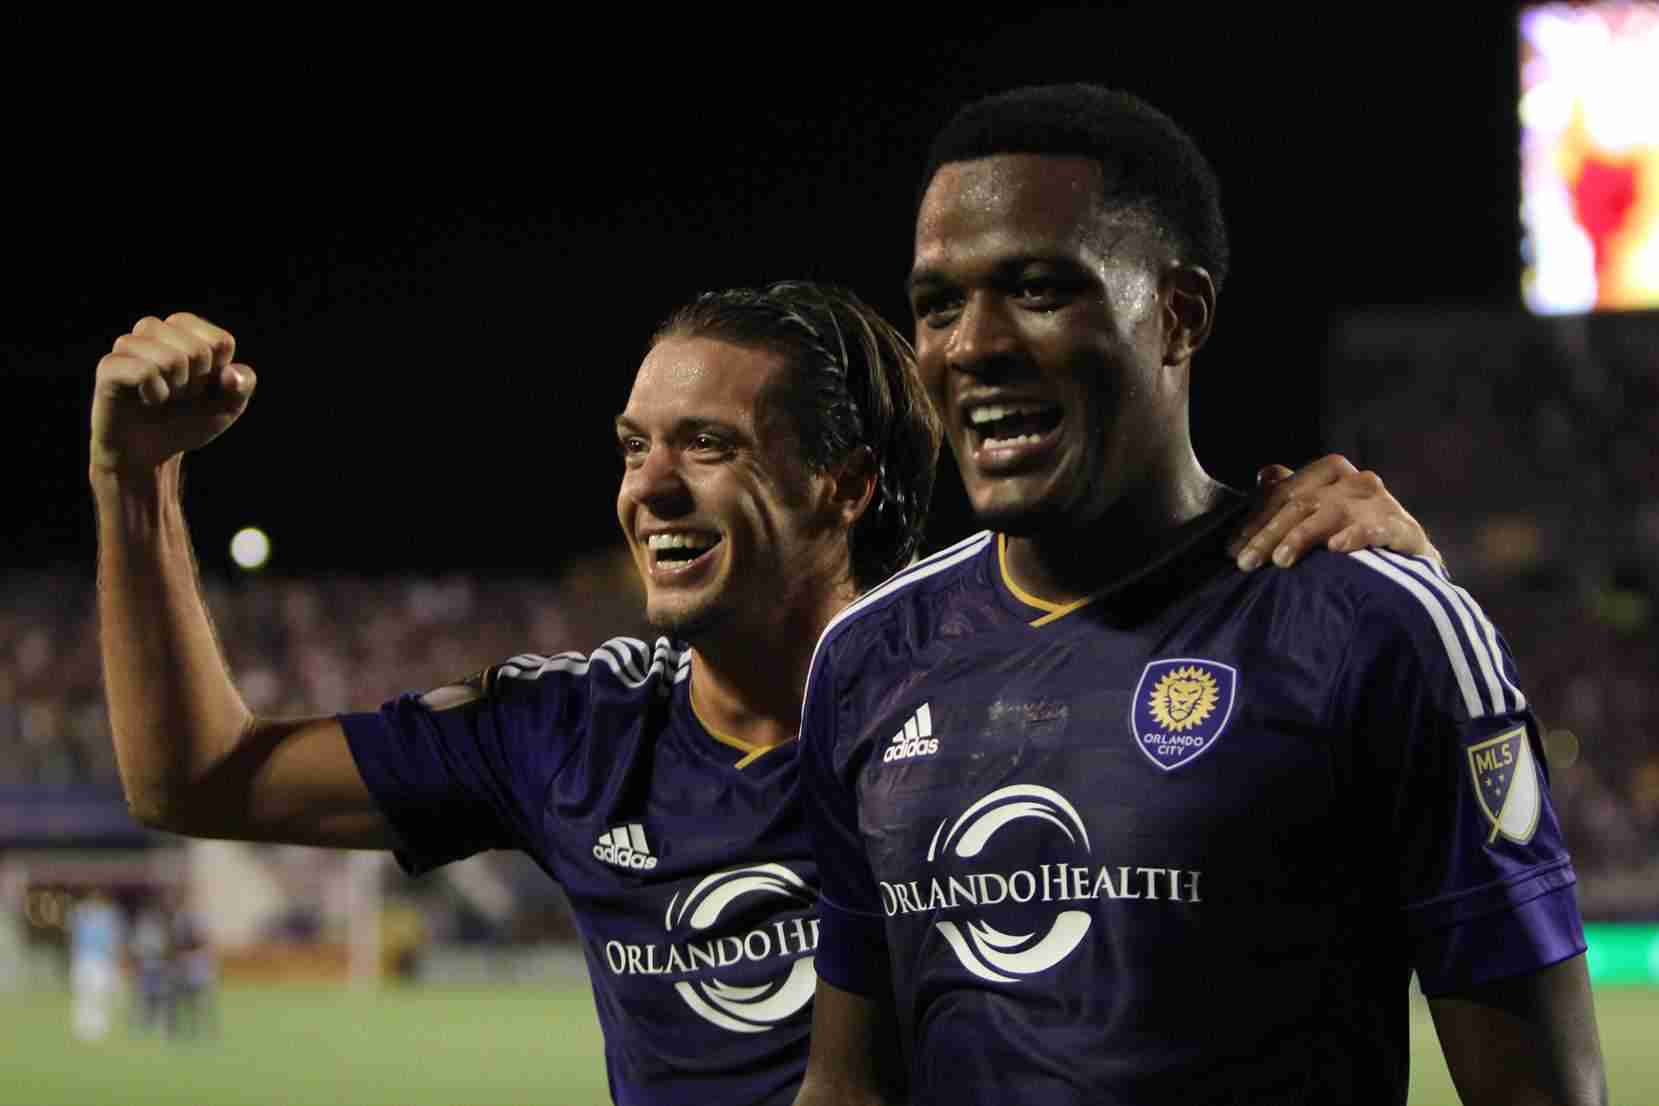 Cyle Larin (right) scored two goals to help Orlando City SC defeat New York City FC 2-1 in their final regular season game at home.